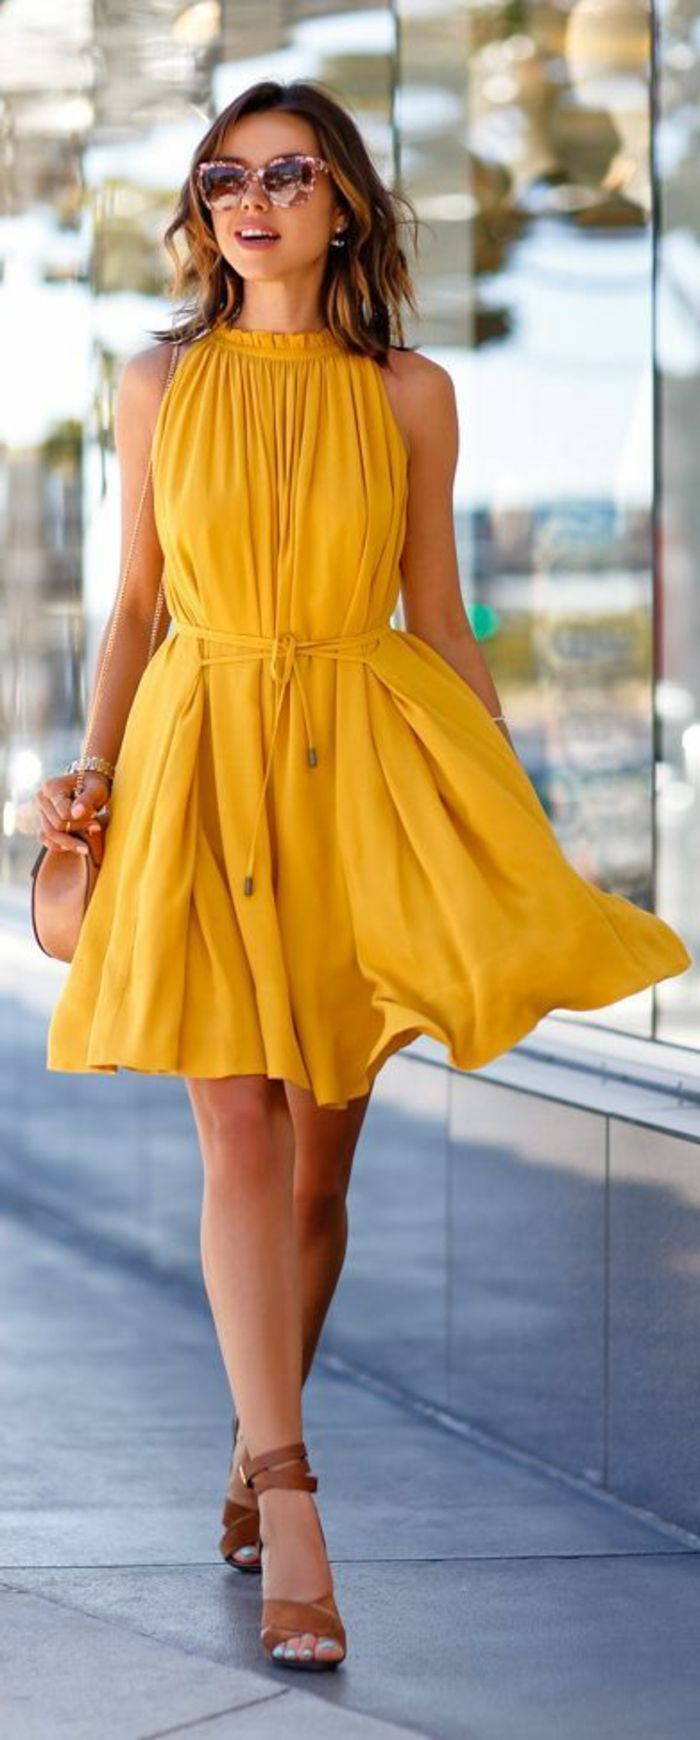 tendance chaussures 2017 une jolie robe jaune robe de soir e jaune robe d 39 t jaune femme. Black Bedroom Furniture Sets. Home Design Ideas